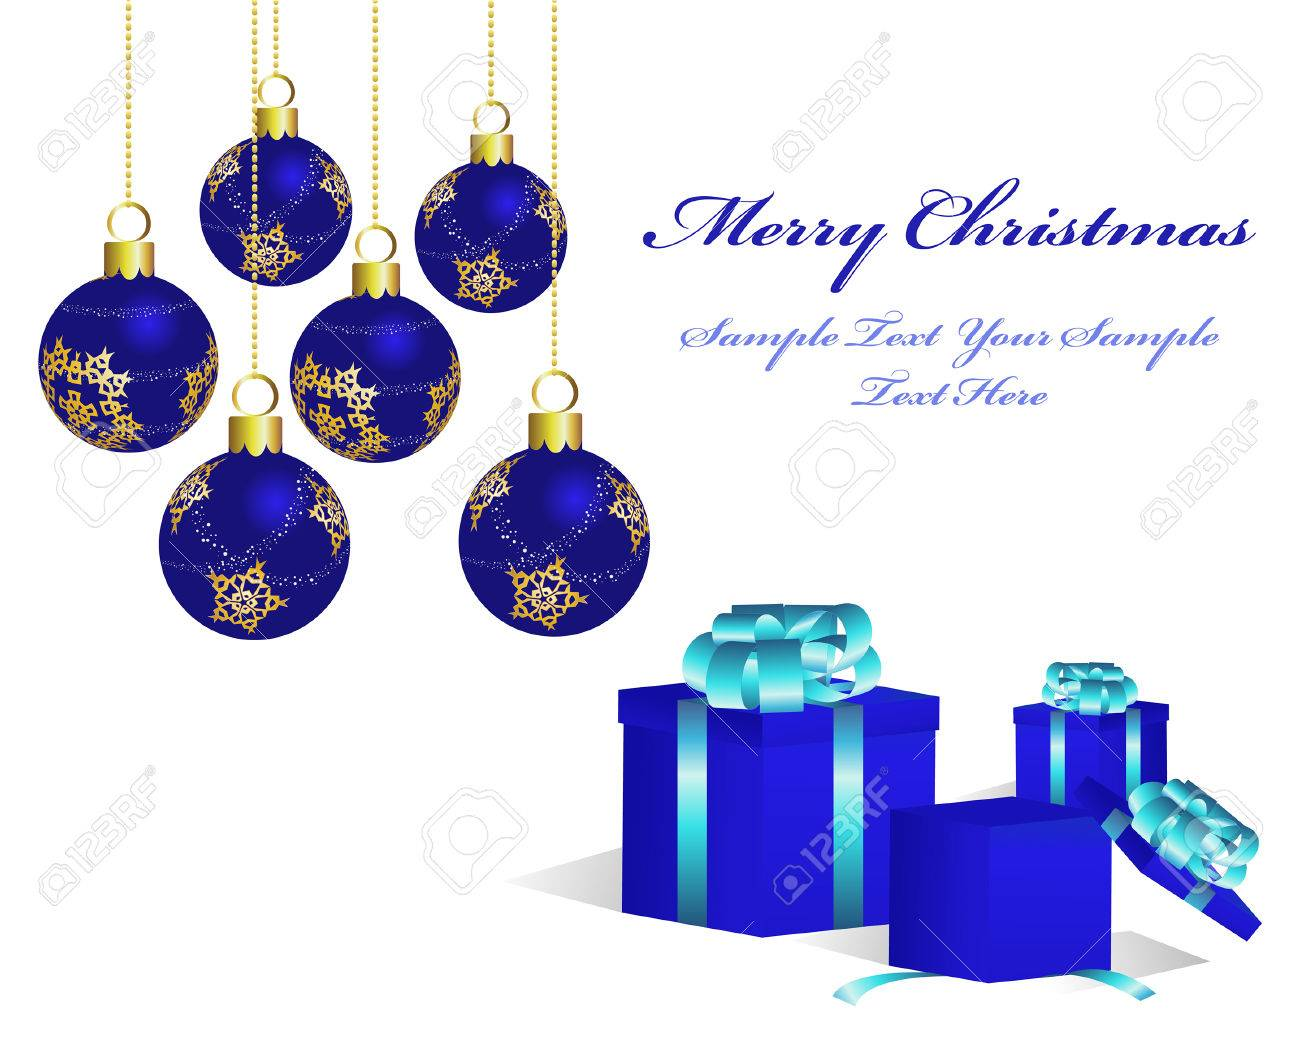 Beautiful vector christmas new year background for design use - Beautiful Vector Christmas New Year Background For Design Use Stock Vector 5935372